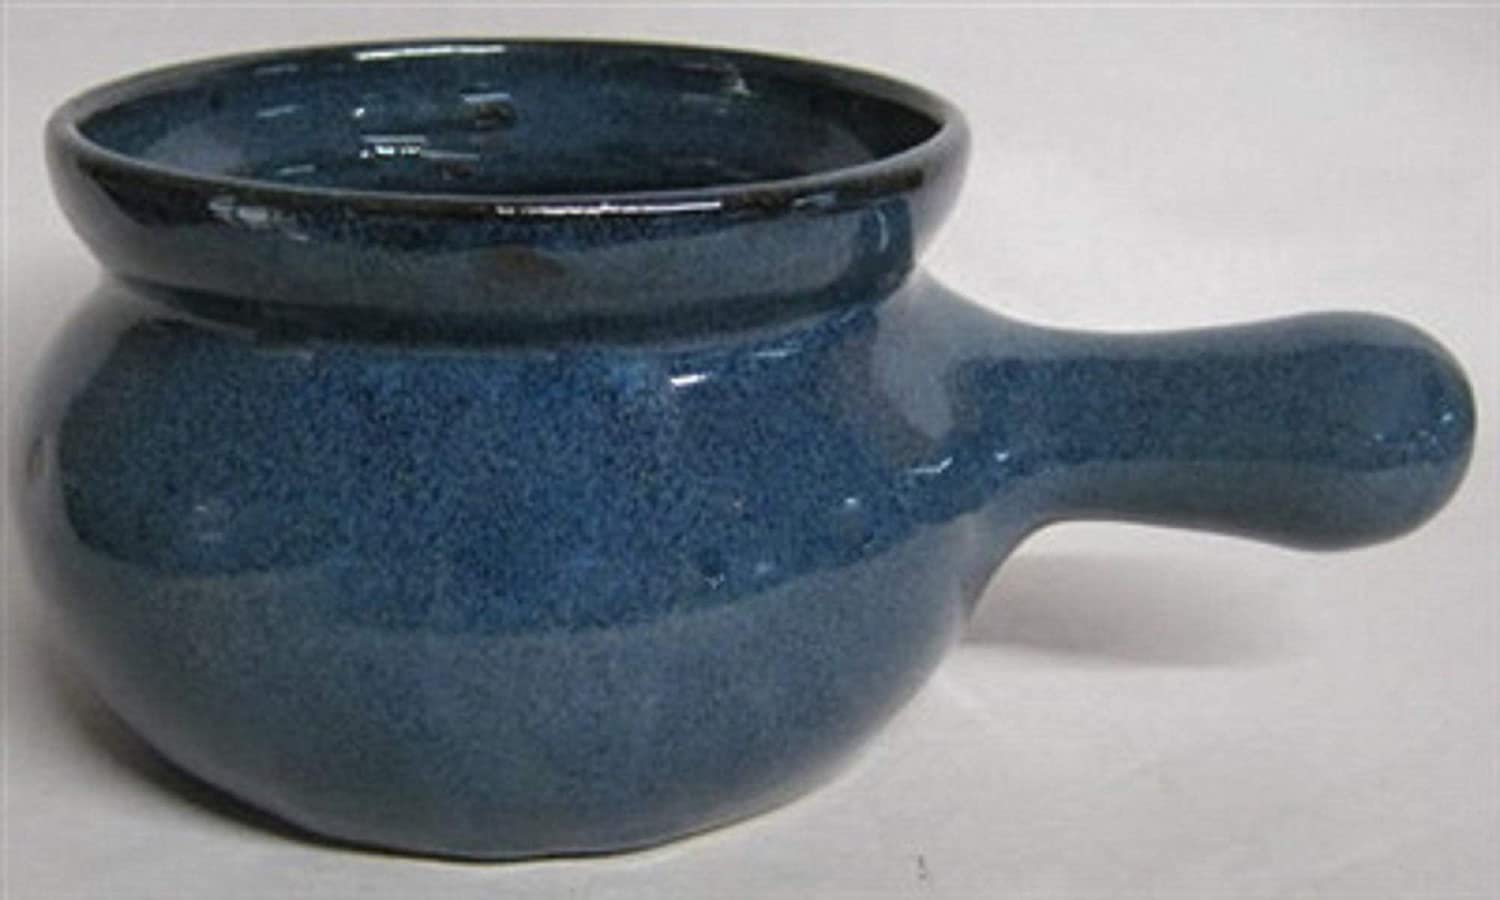 Handmade pottery french onion bowl with long handle by Traditions Pottery blue